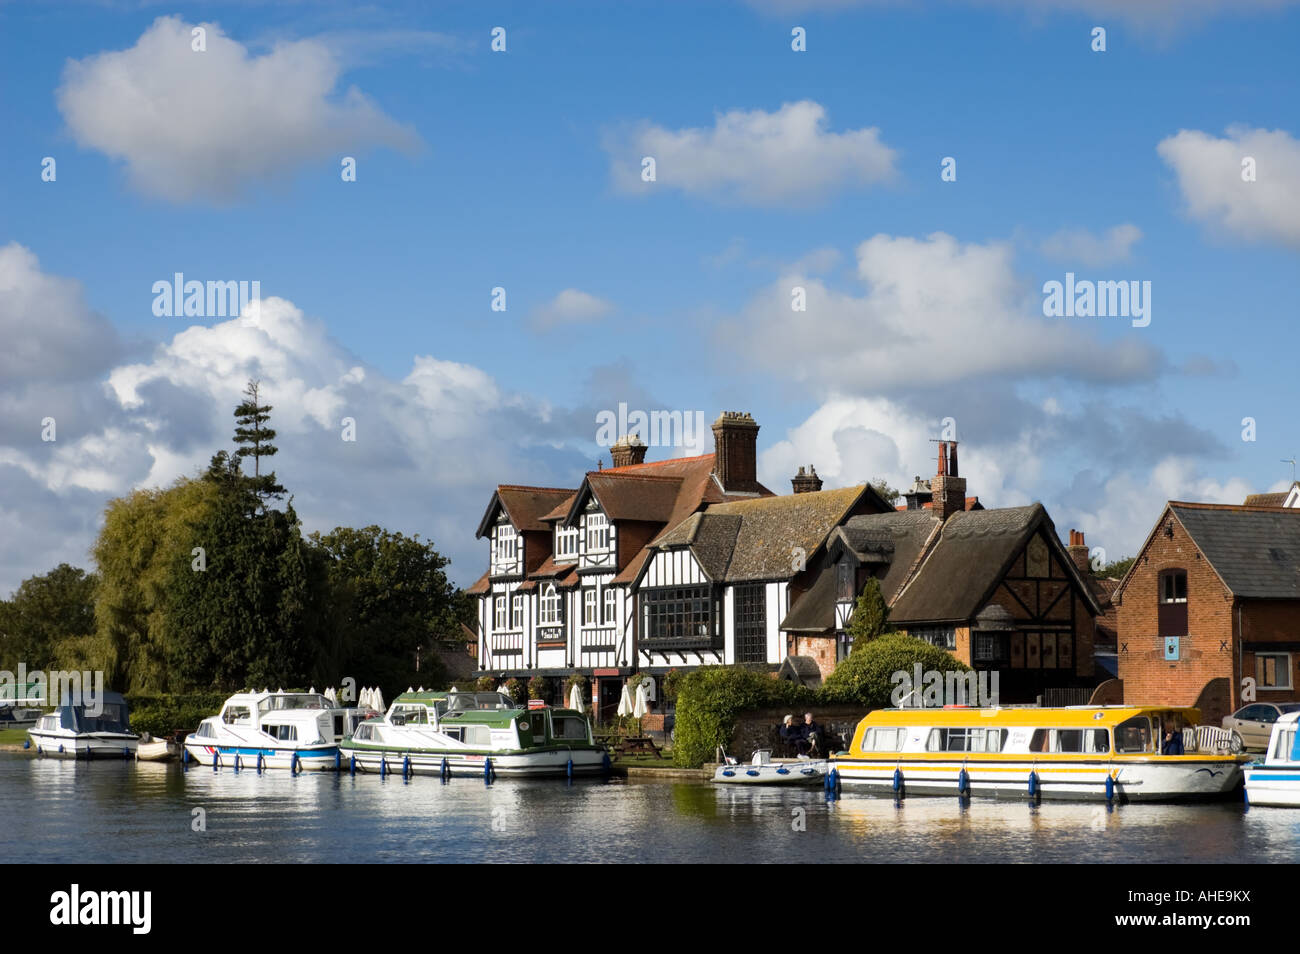 Horning, River Bure, Norfolk Broads, Norfolk, East Anglia, England, UK Stock Photo